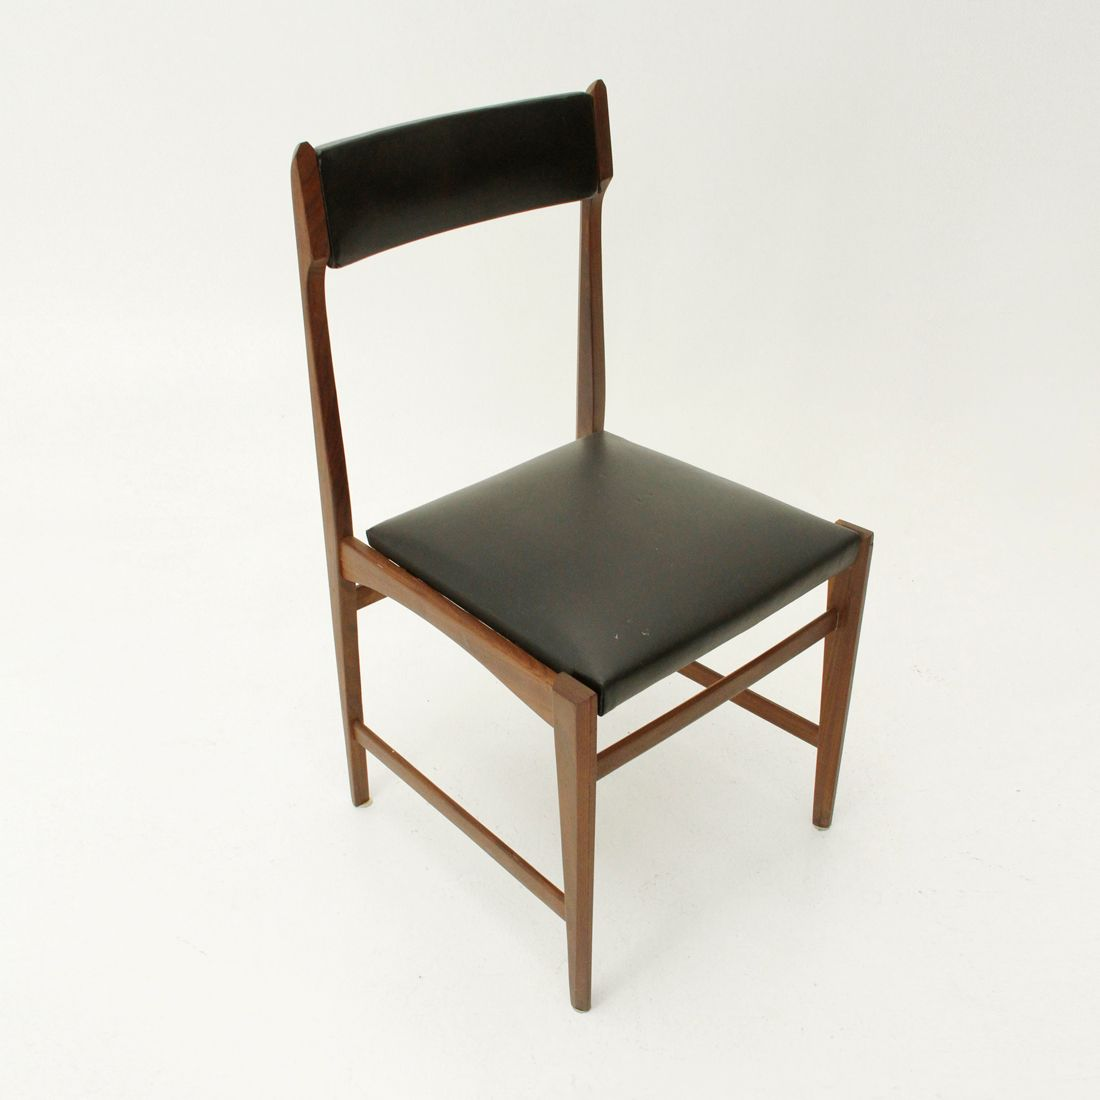 Black skai dining chairs 1960s set of 6 for sale at pamono for Black dining chairs for sale